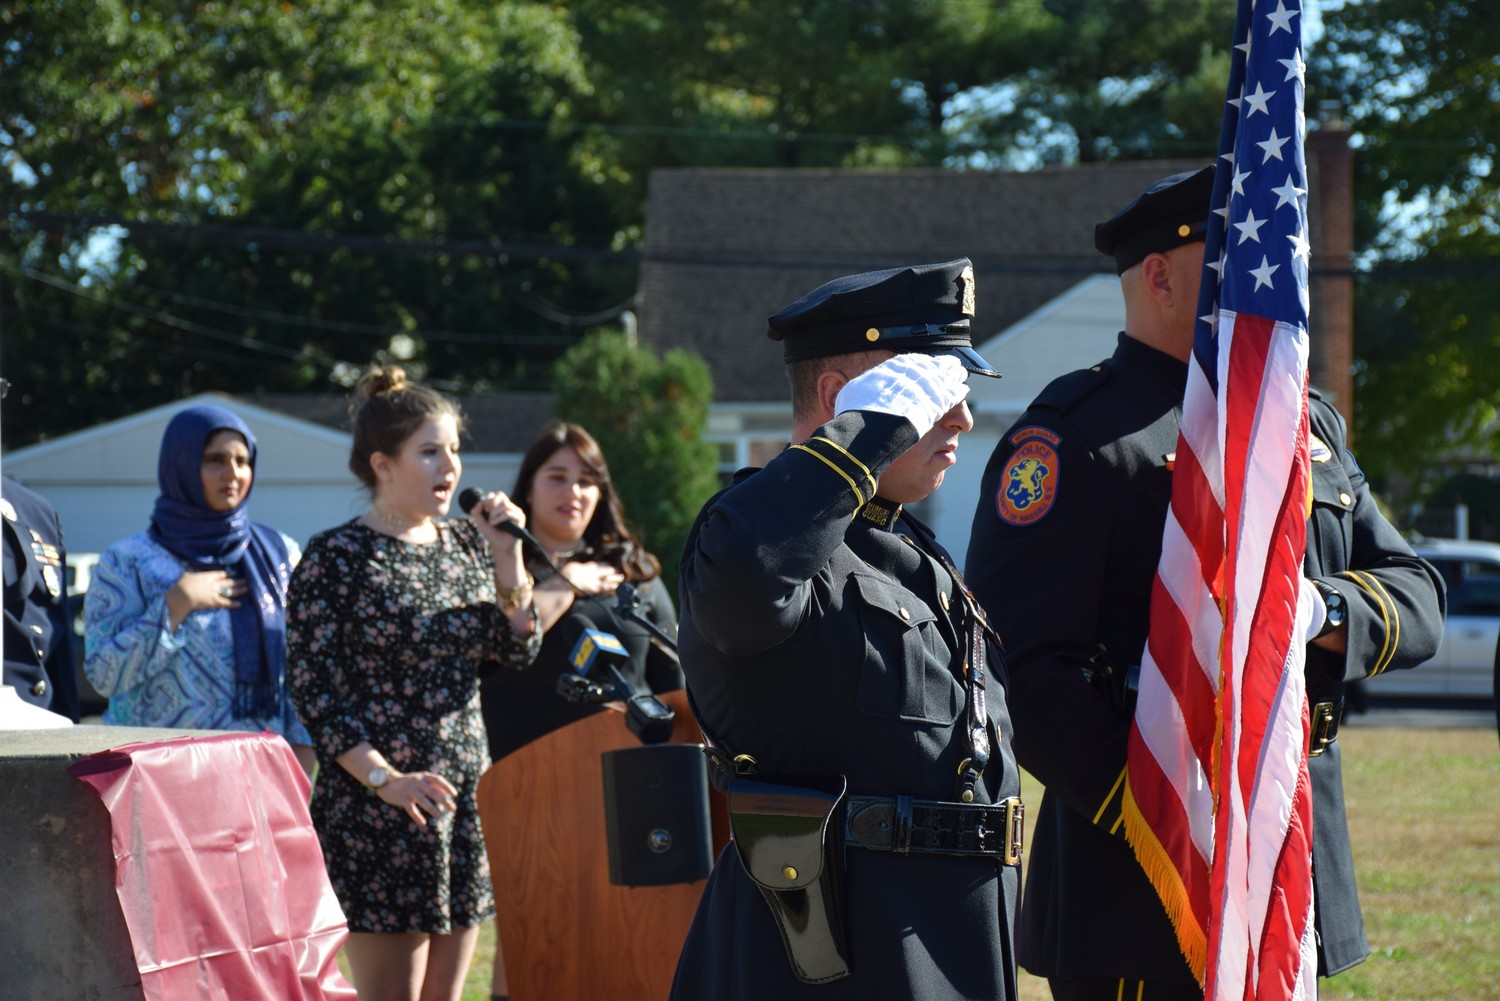 Mepham student Monica Sarduy sang the national anthem.